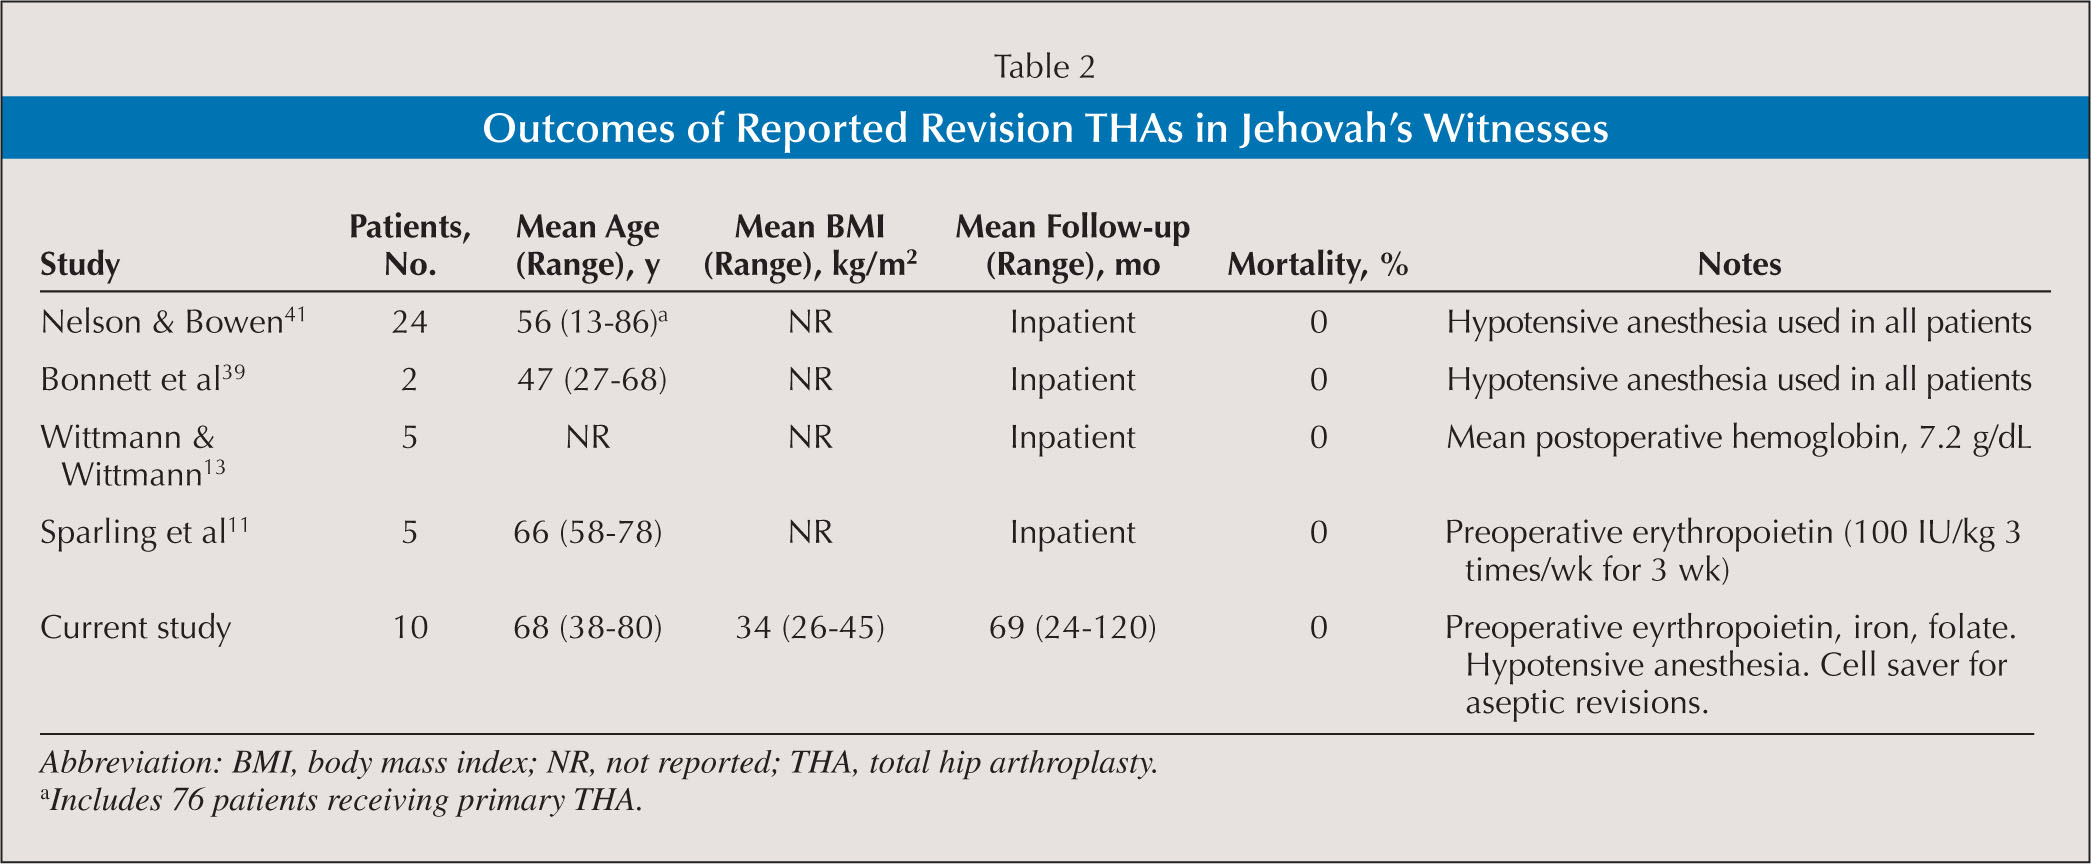 Outcomes of Reported Revision THAs in Jehovah's Witnesses